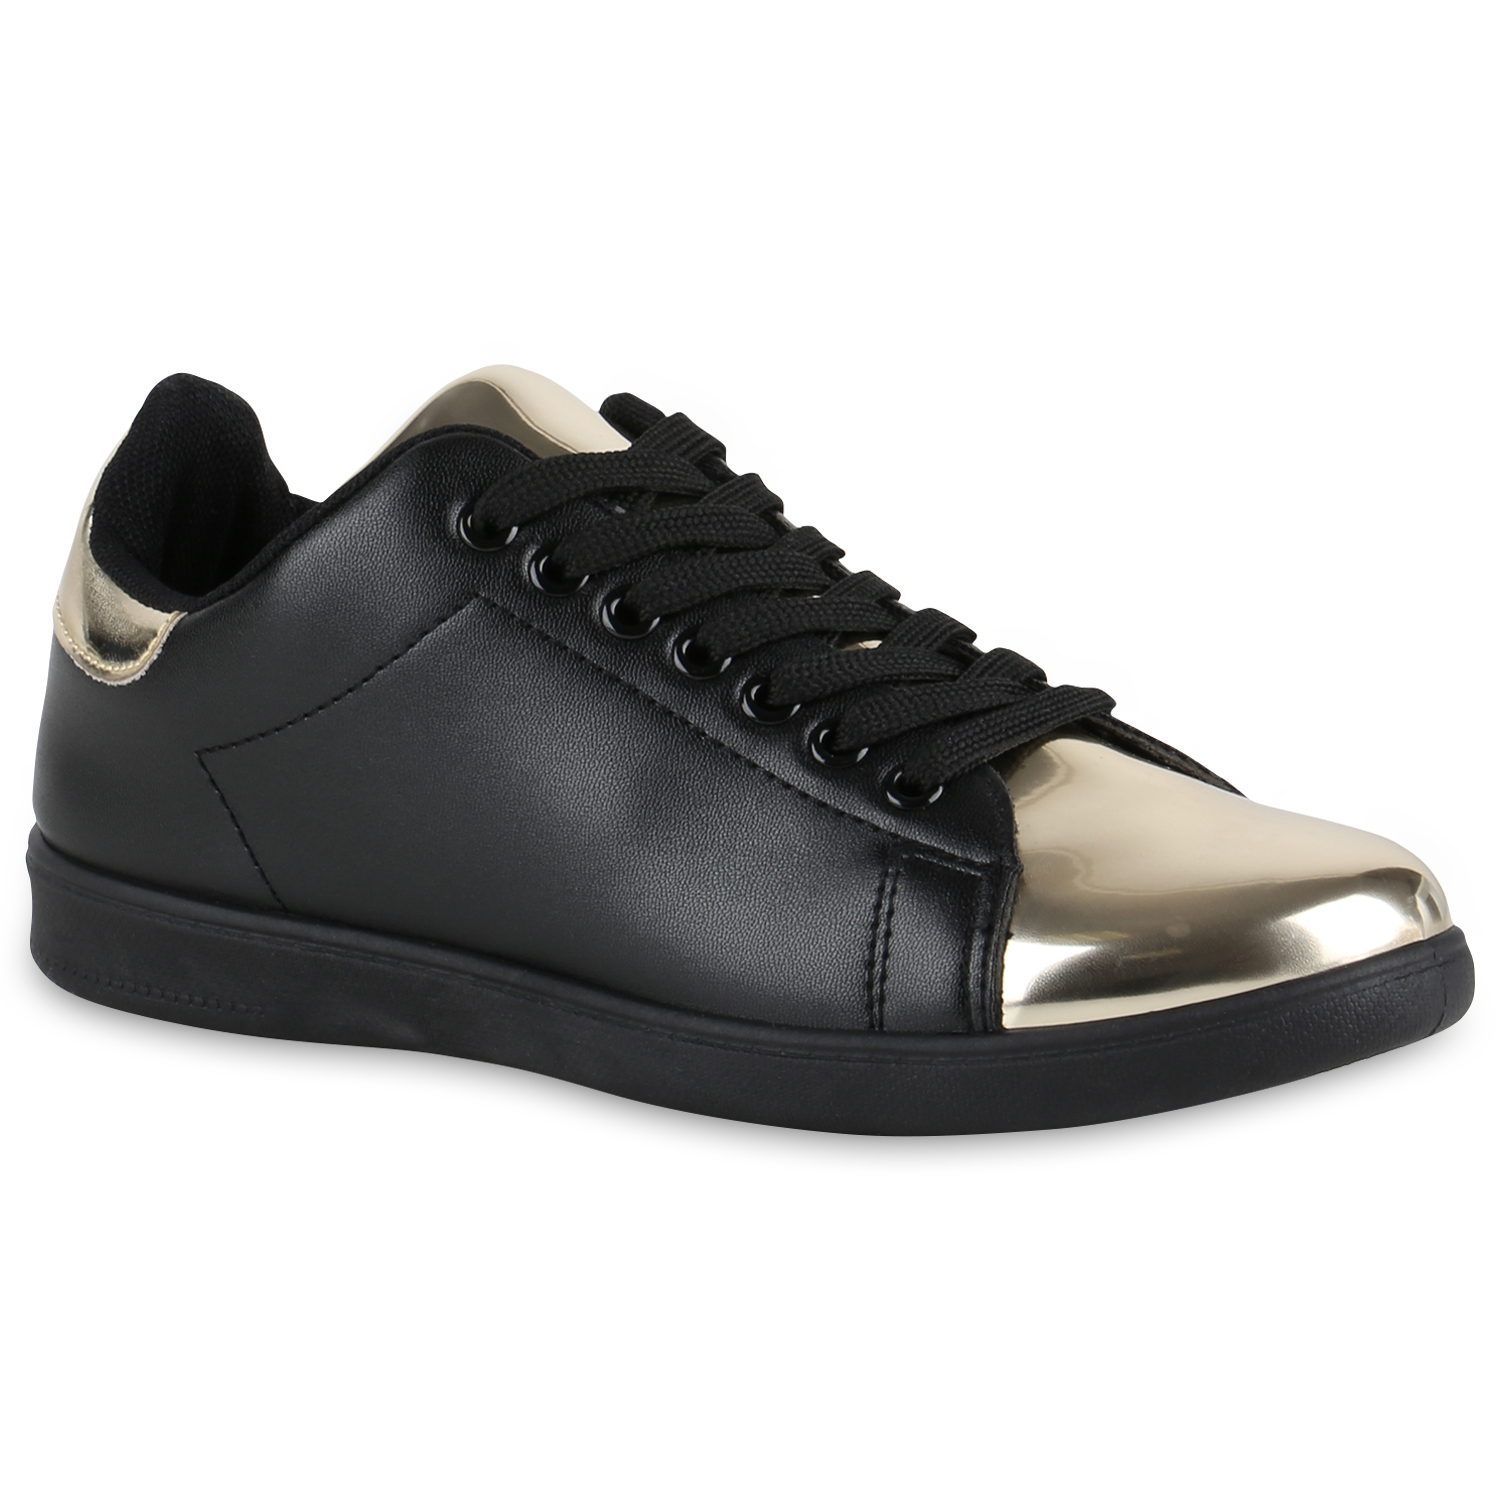 Damen Sneaker low - Schwarz Gold